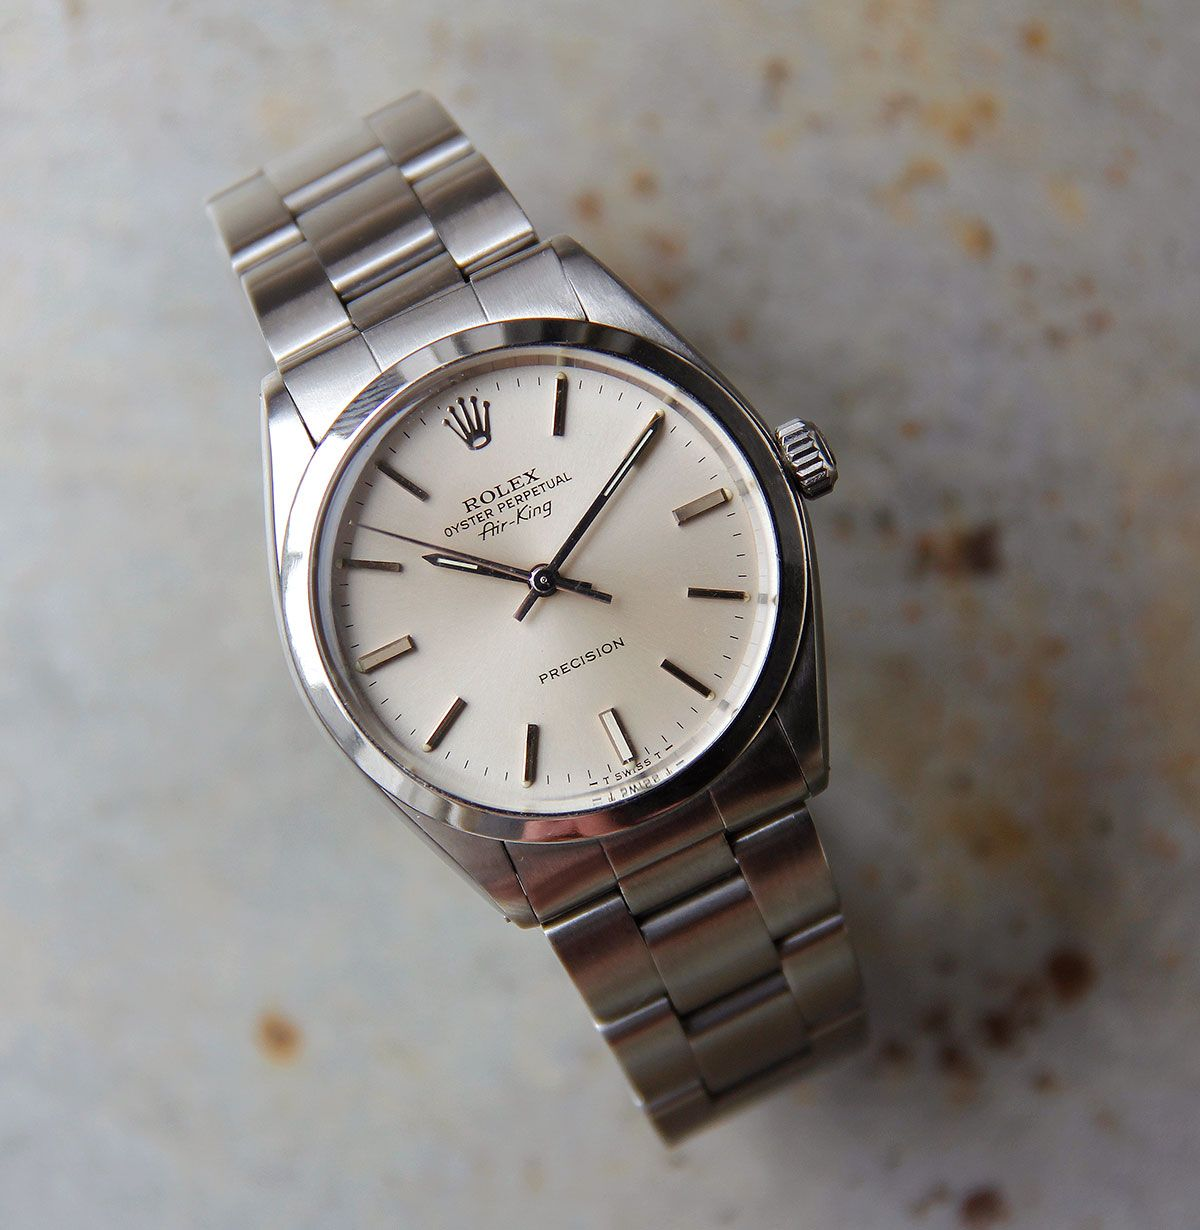 Rolex Air King Oyster 1983 in 2020 Rolex air king